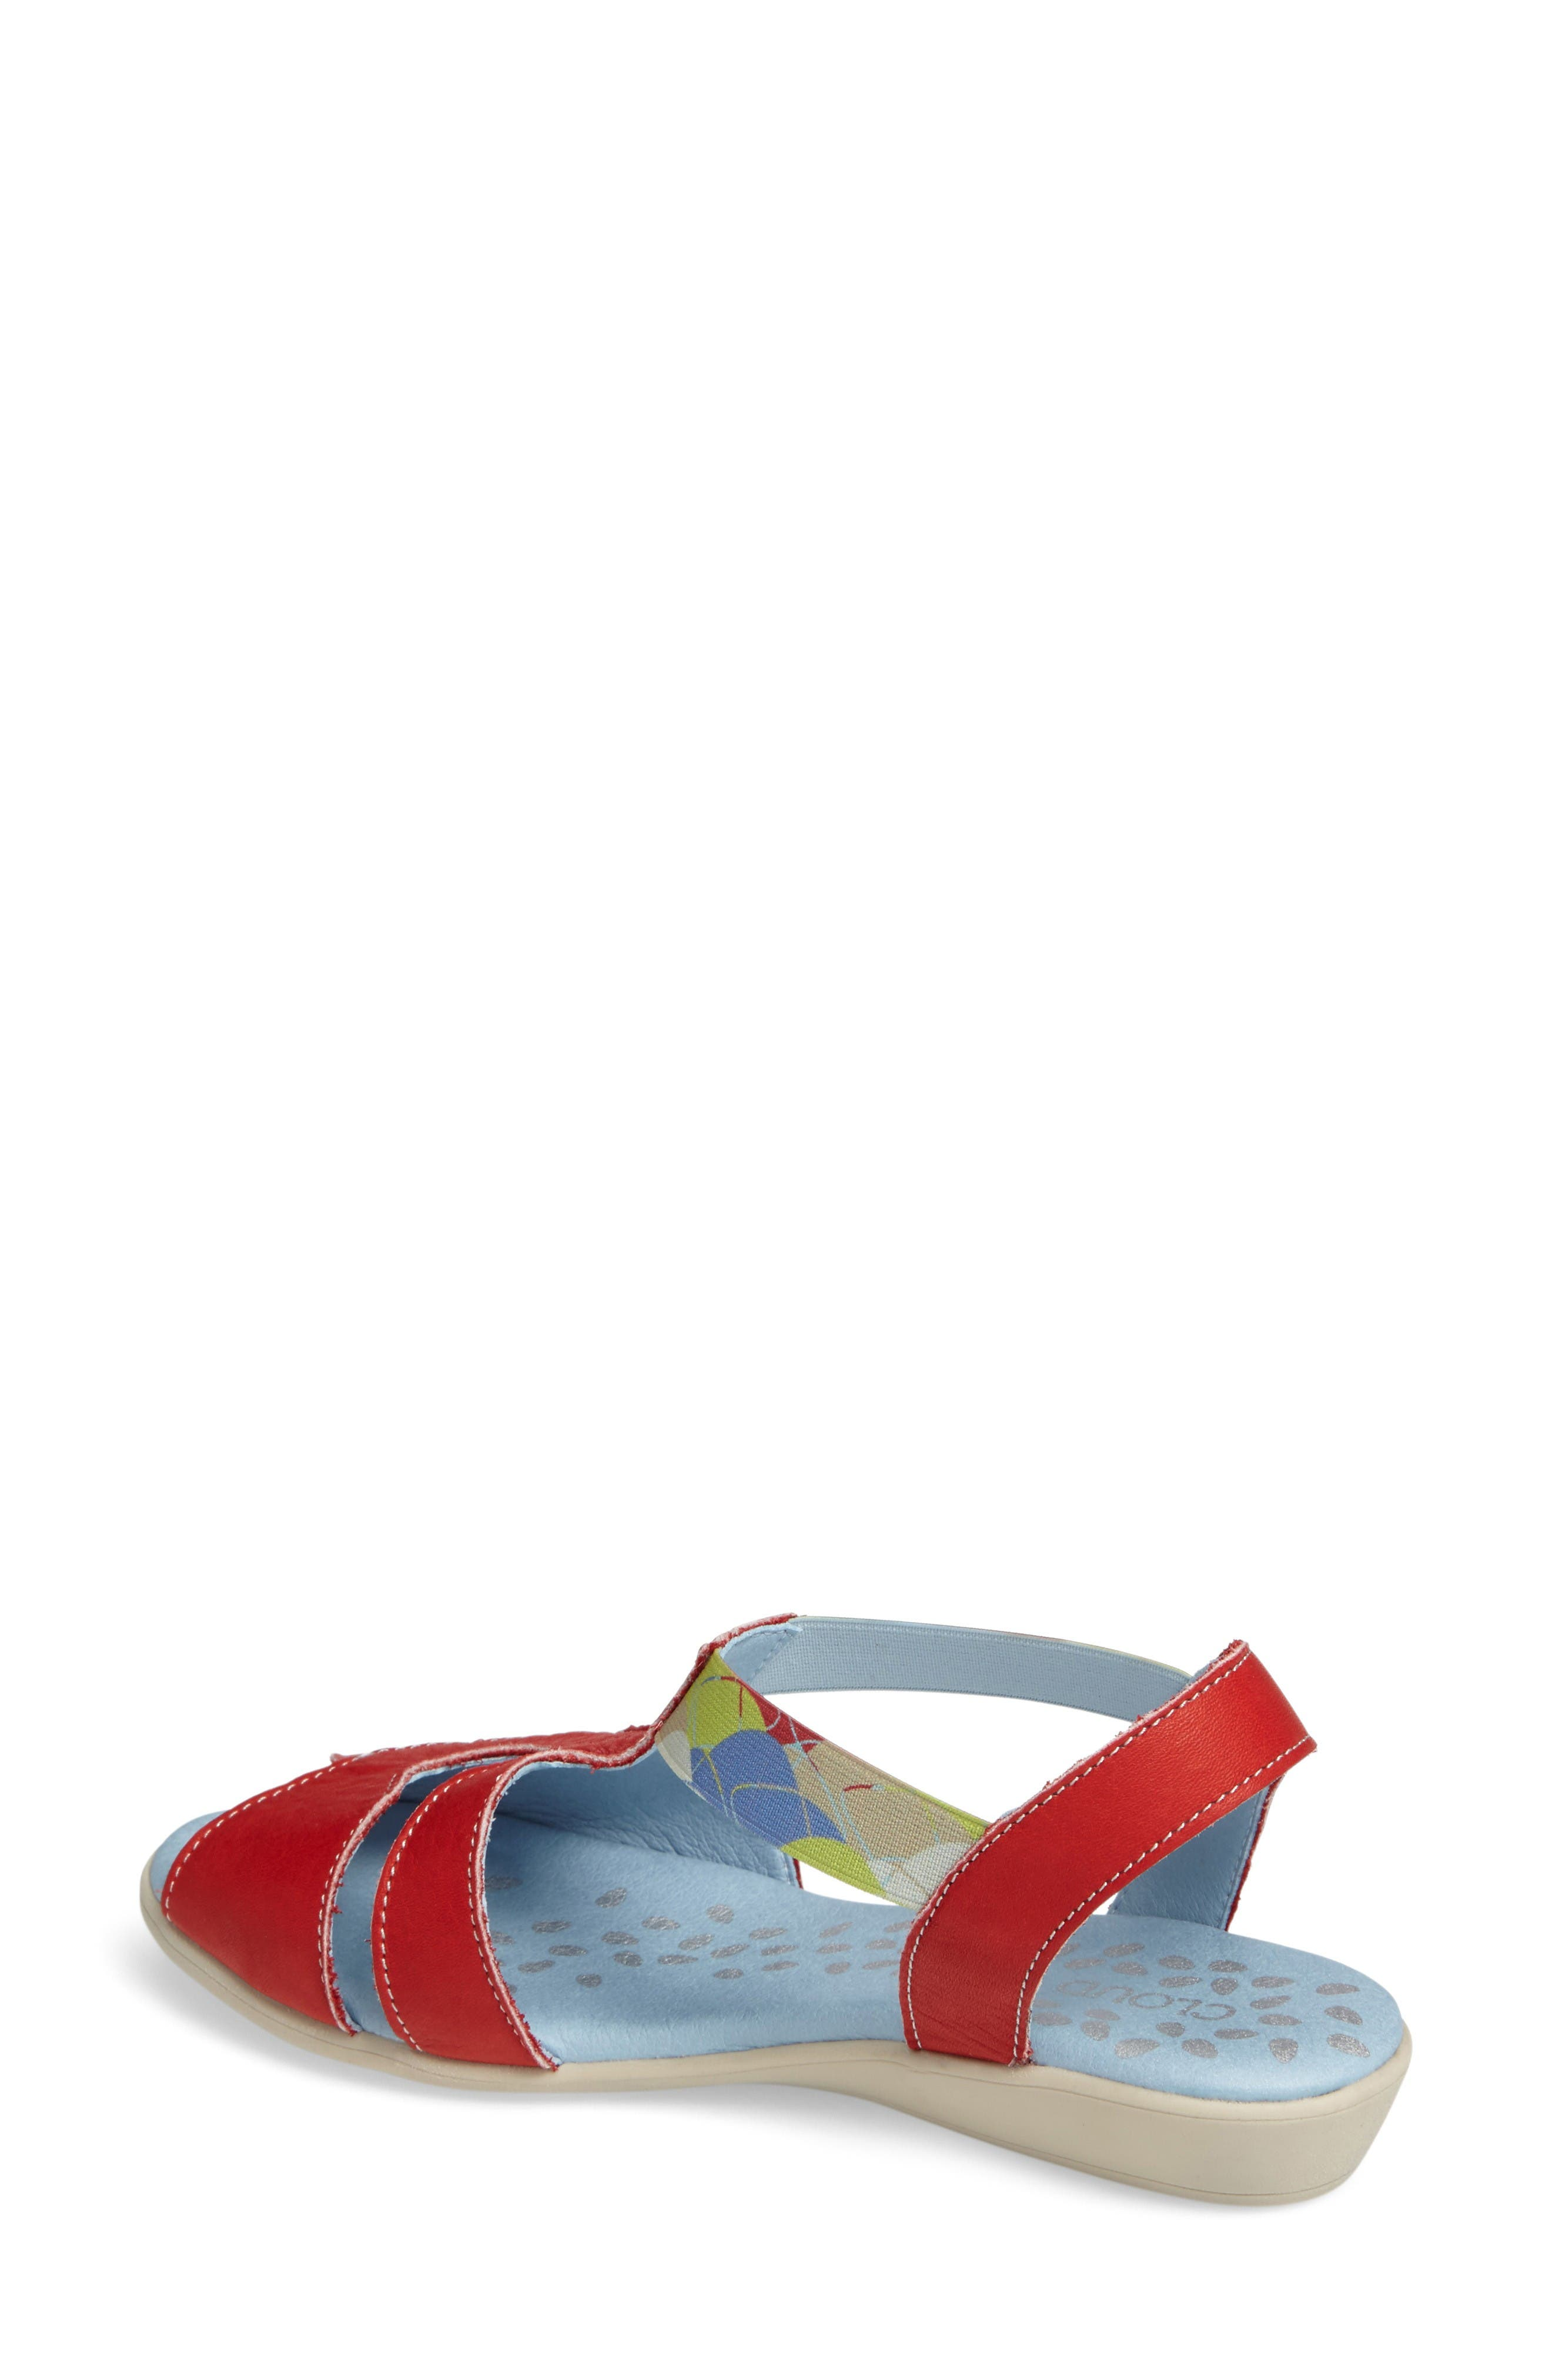 Chaya Sandal,                             Alternate thumbnail 2, color,                             Red Leather